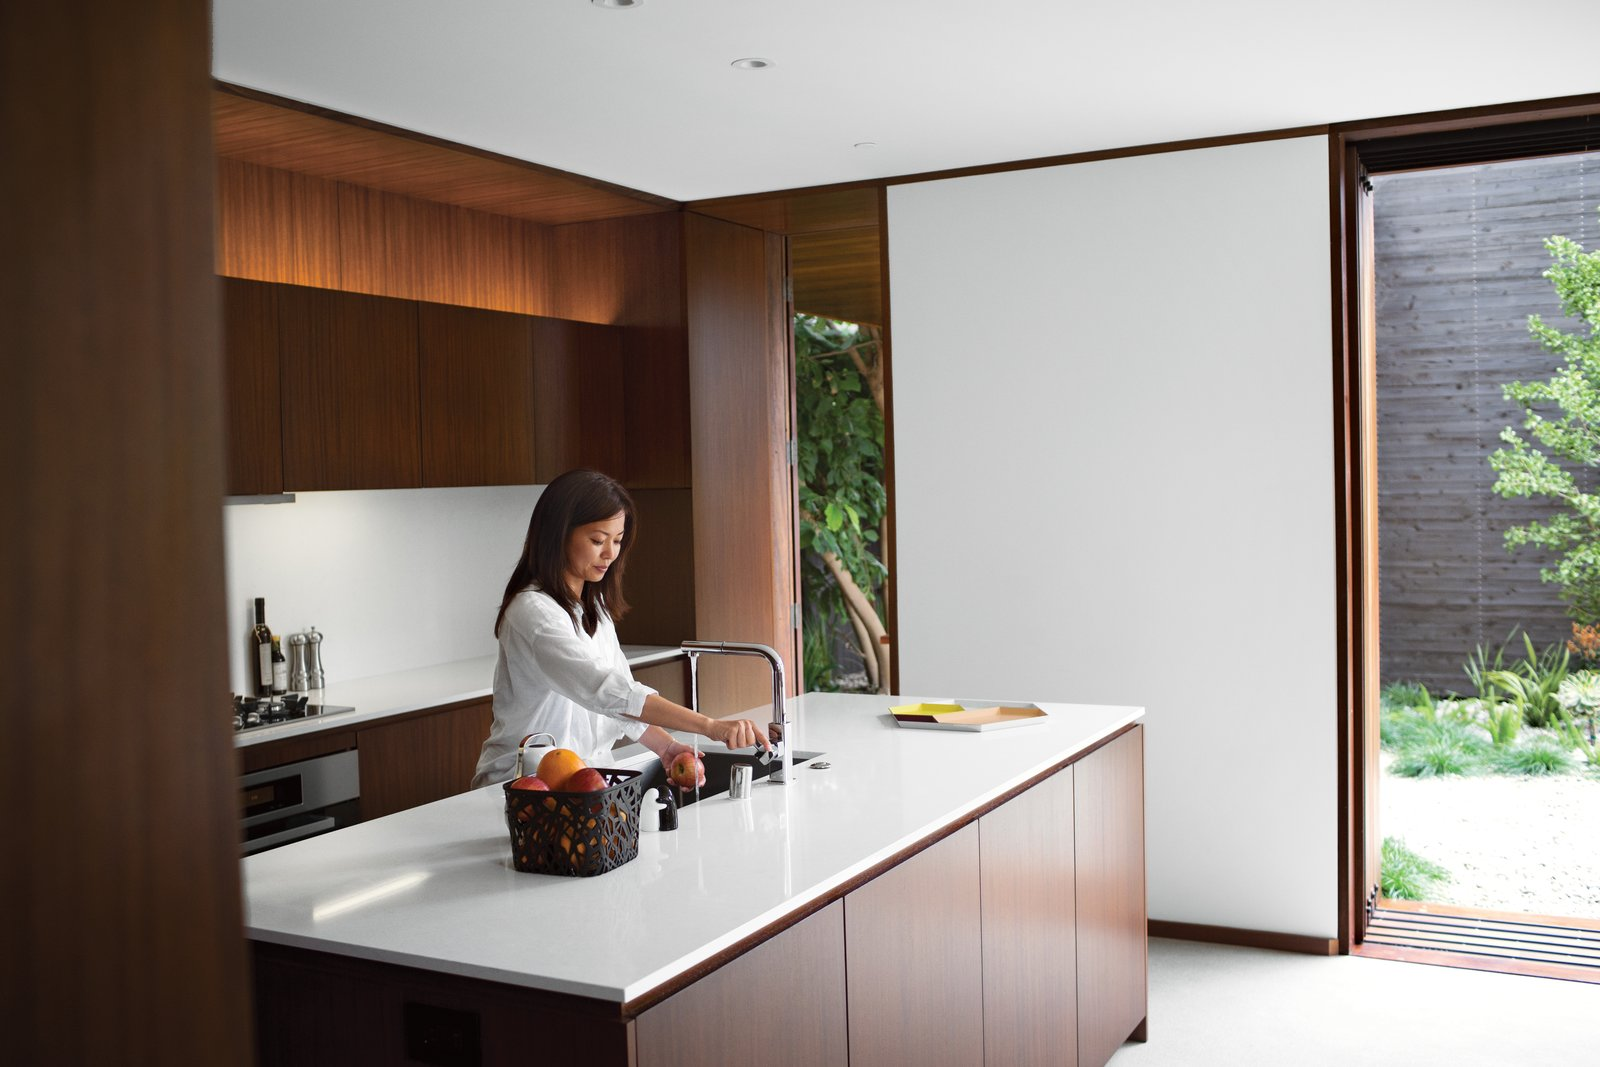 """I love the house more each day,"" says Tamami Sylvester of her and husband Michael's home by Sebastian Mariscal in Venice, California. The kitchen, which includes all Miele appliances, is sheathed in custom woodwork from Semihandmade. Accessories from A+R complement the Caesarstone countertops and Franke faucet. A LifeSource Water System provides filtration. Photo by Coral von Zumwalt.  Photo 4 of 10 in A Modern Bungalow in Venice Beach"